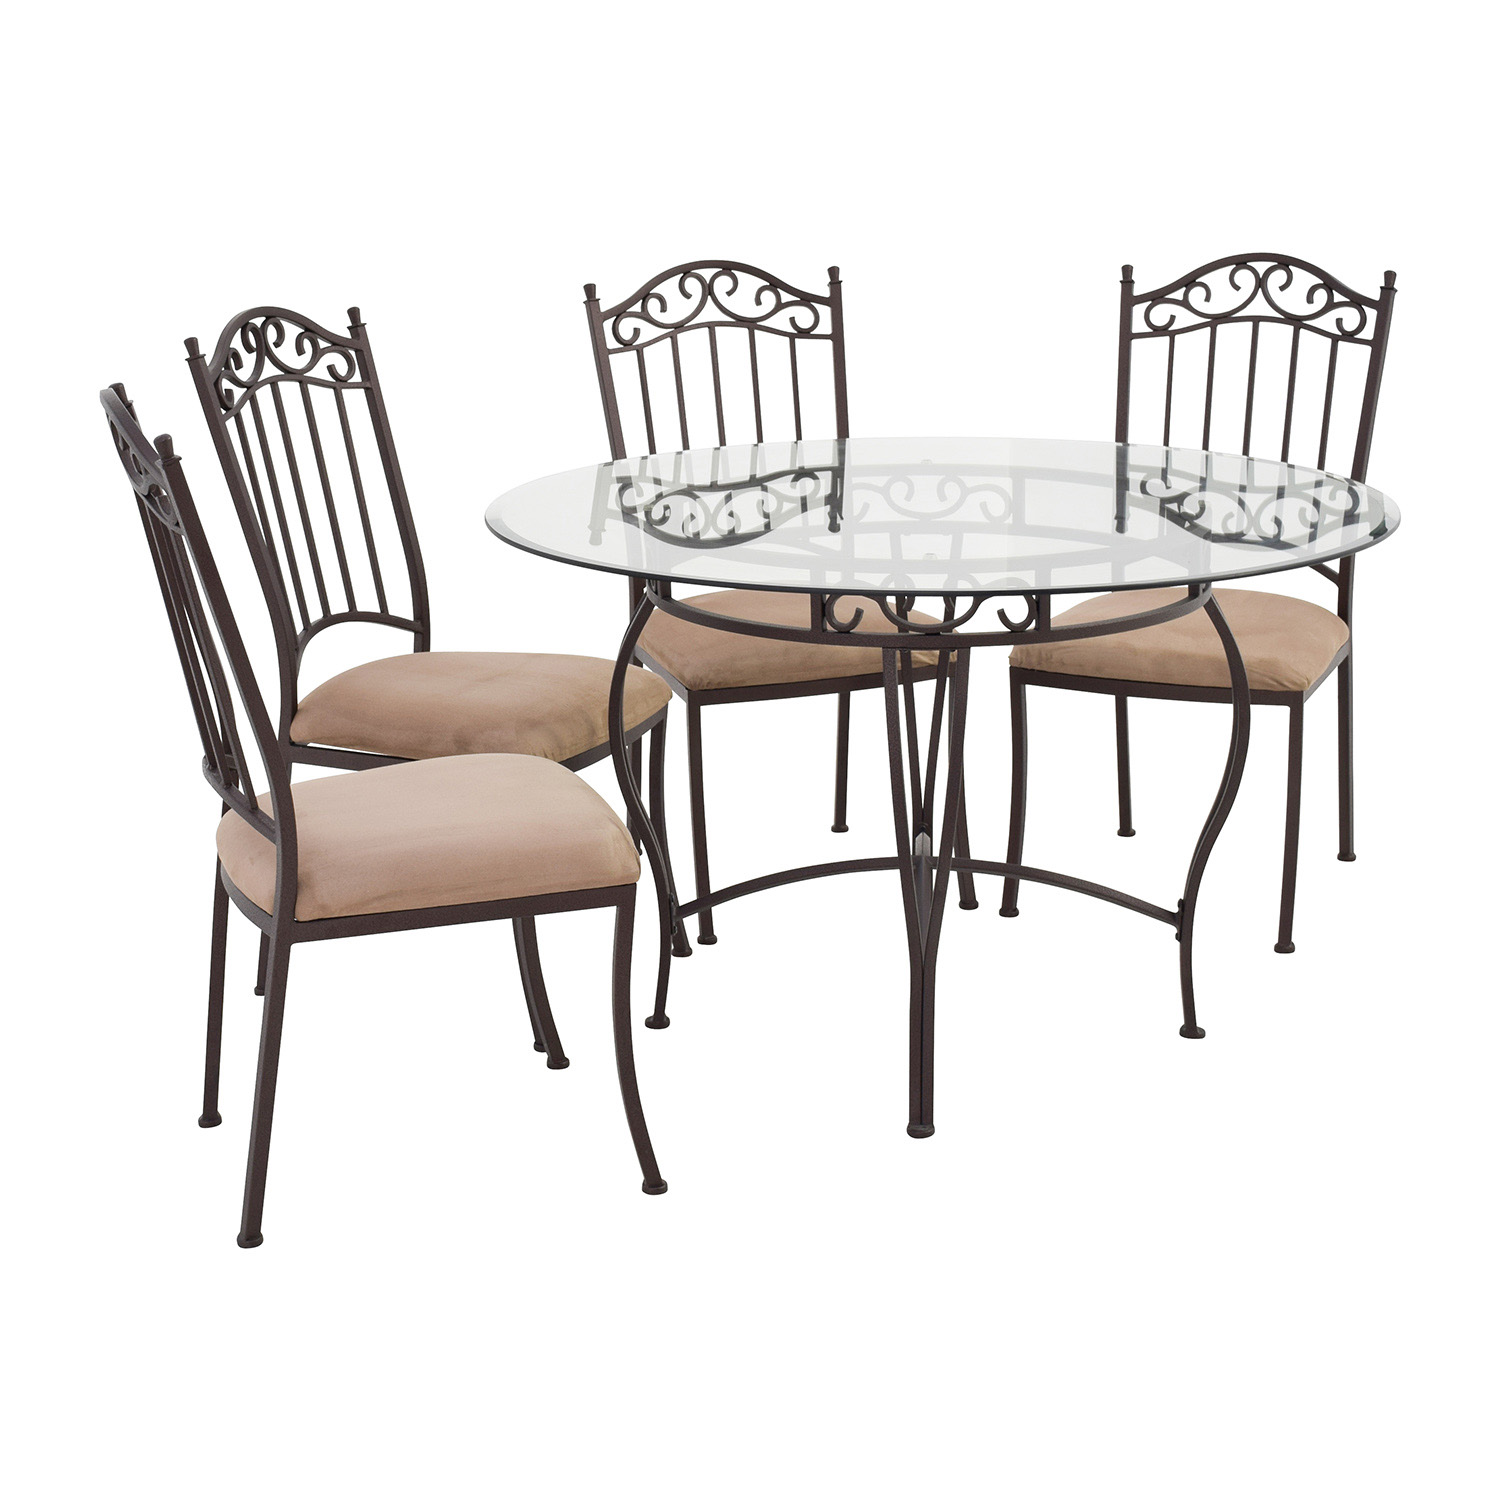 Secondhand Chairs And Tables: Wrought Iron Round Glass Table And Chairs / Tables